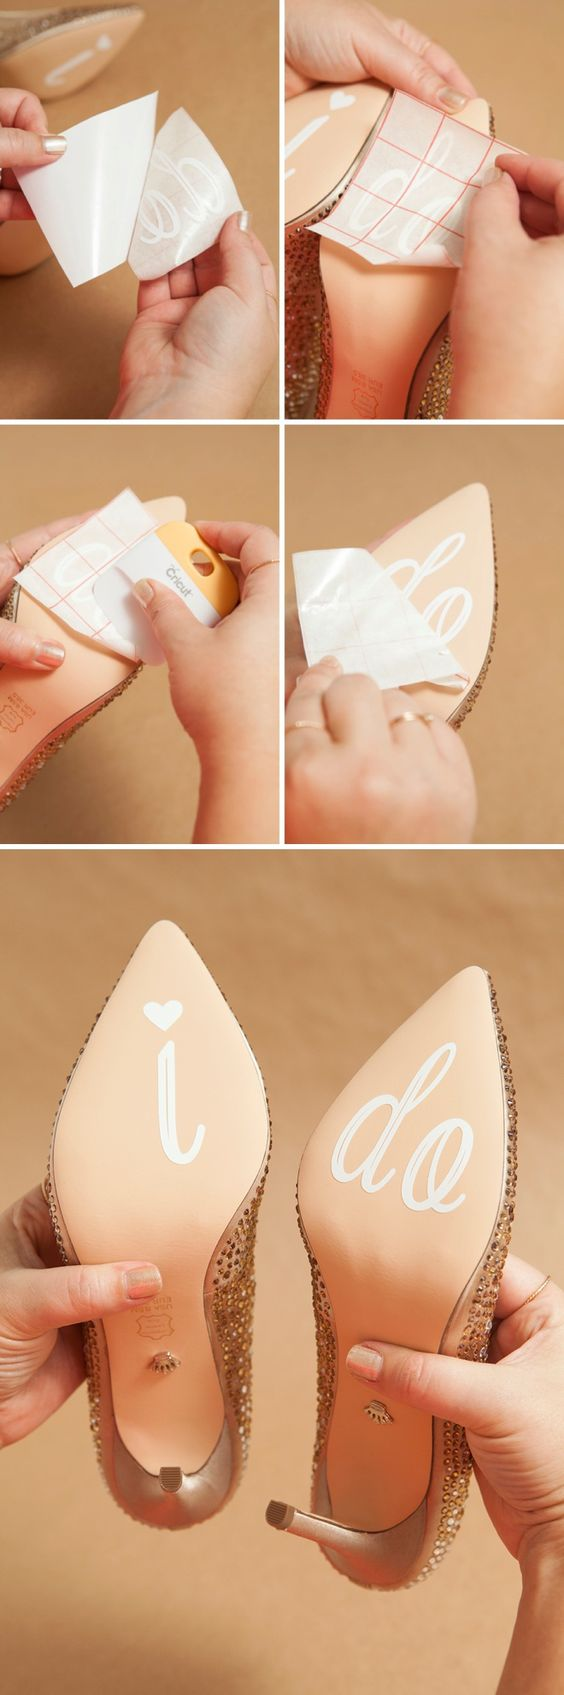 Learn how to make custom wedding shoe stickers!: